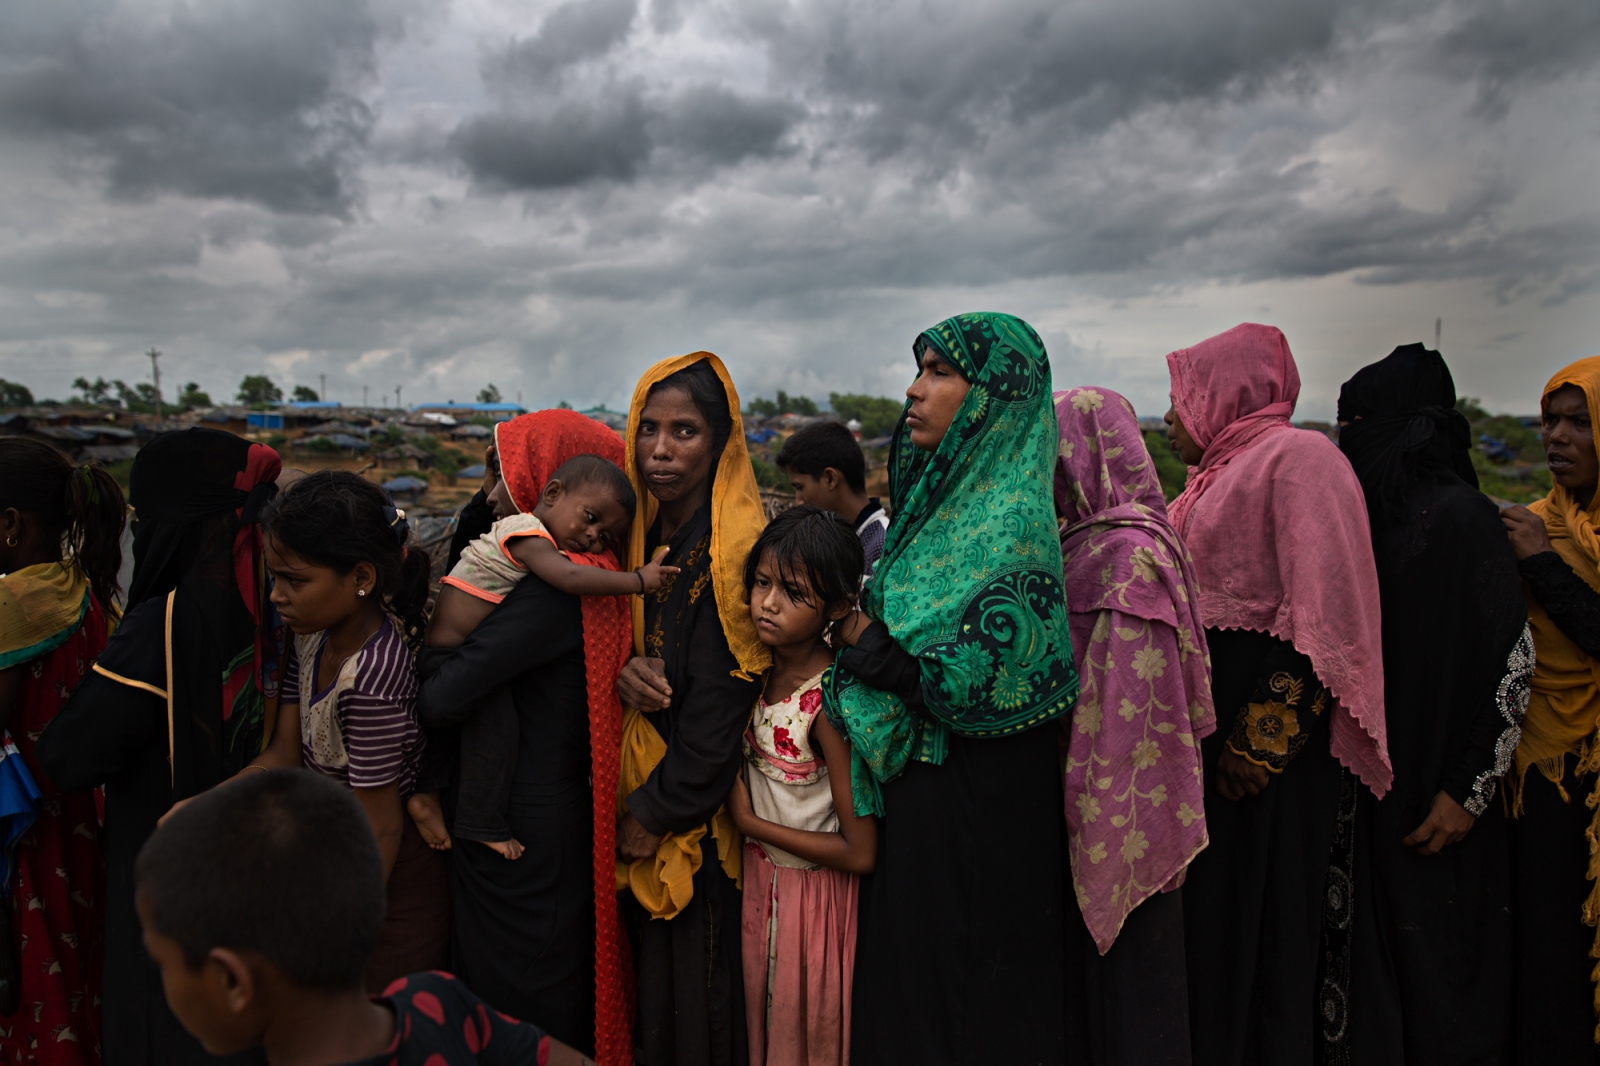 Rohingya refugees wait in a food distribution line in Kutapalong refugee camp. Food lines were long and the weather was either unbearably hot or rainy and muddy. Tempers often flared and guards used sticks to beat people back into line and avoid chaos.